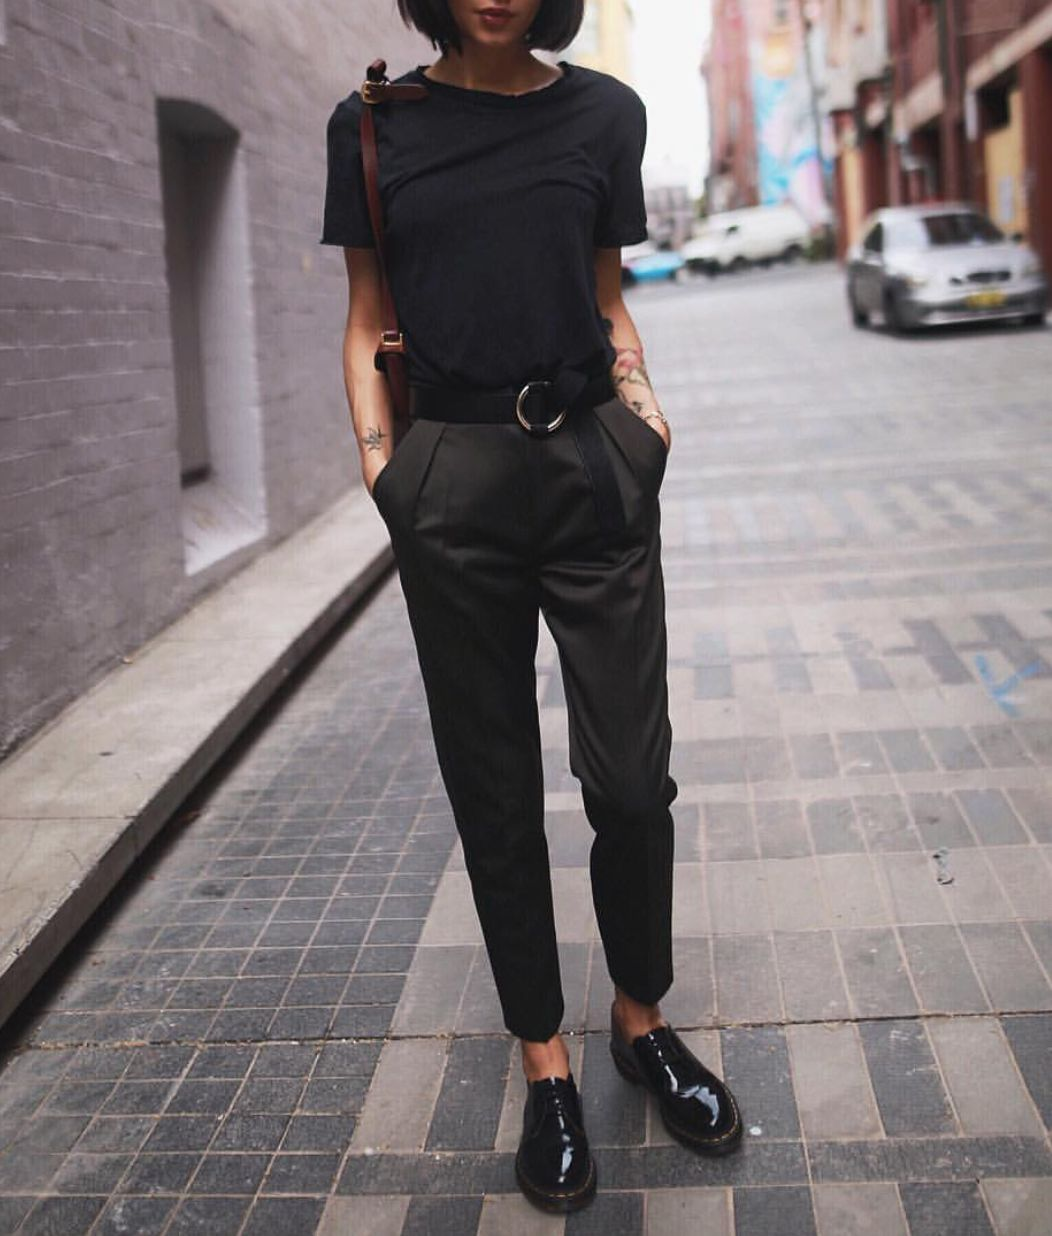 More Masculine Styles Are Very Comfortable Love Dark Colors